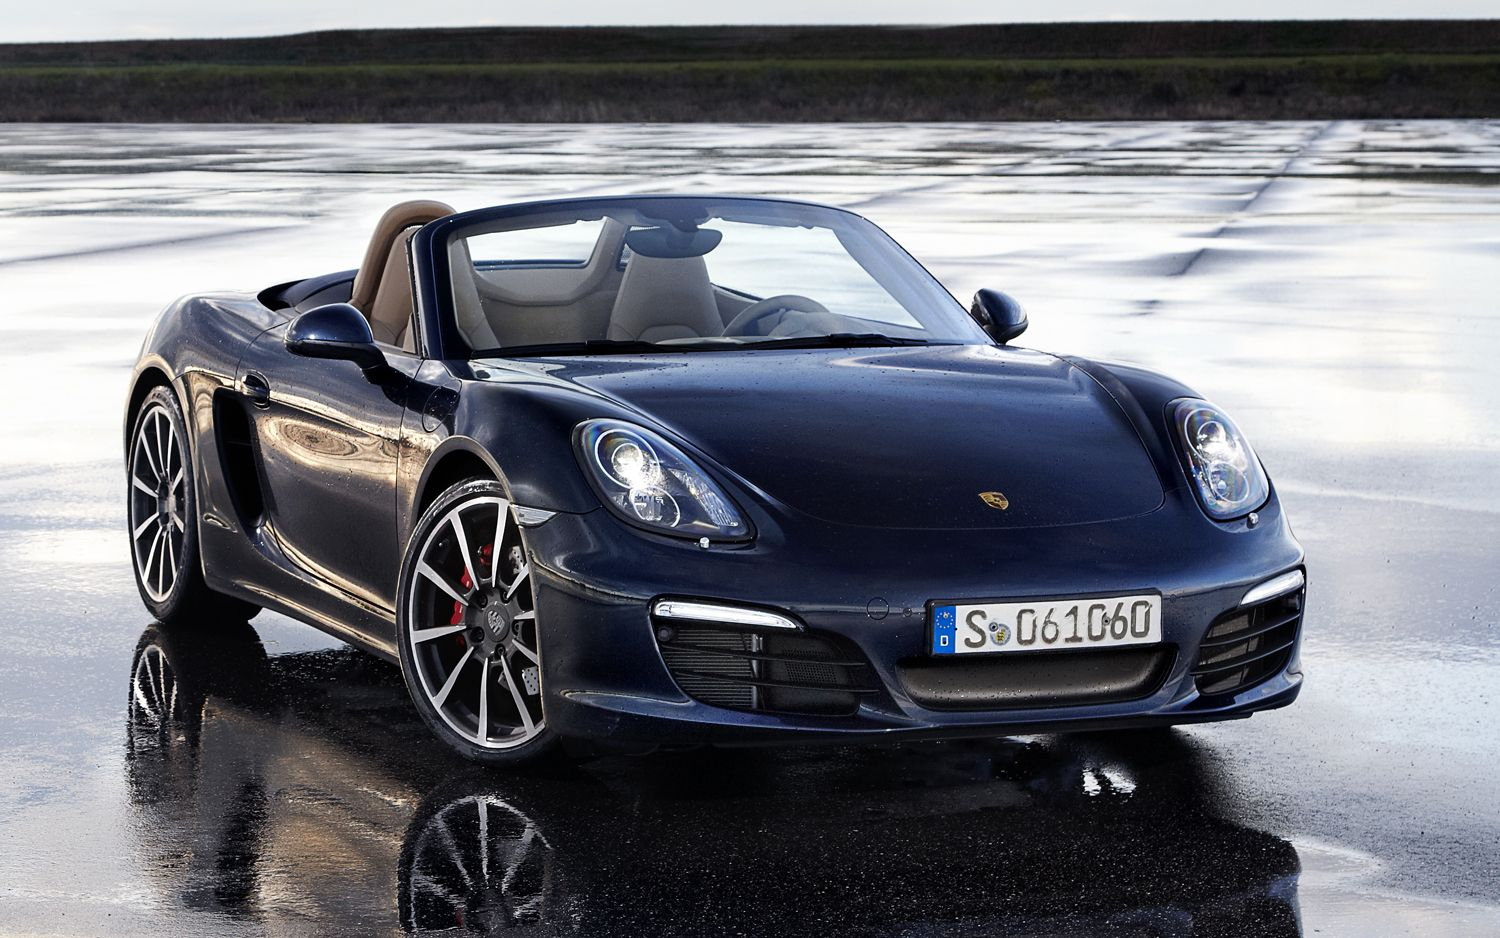 report 2013 porsche boxster laps n rburgring in 7 58. Black Bedroom Furniture Sets. Home Design Ideas